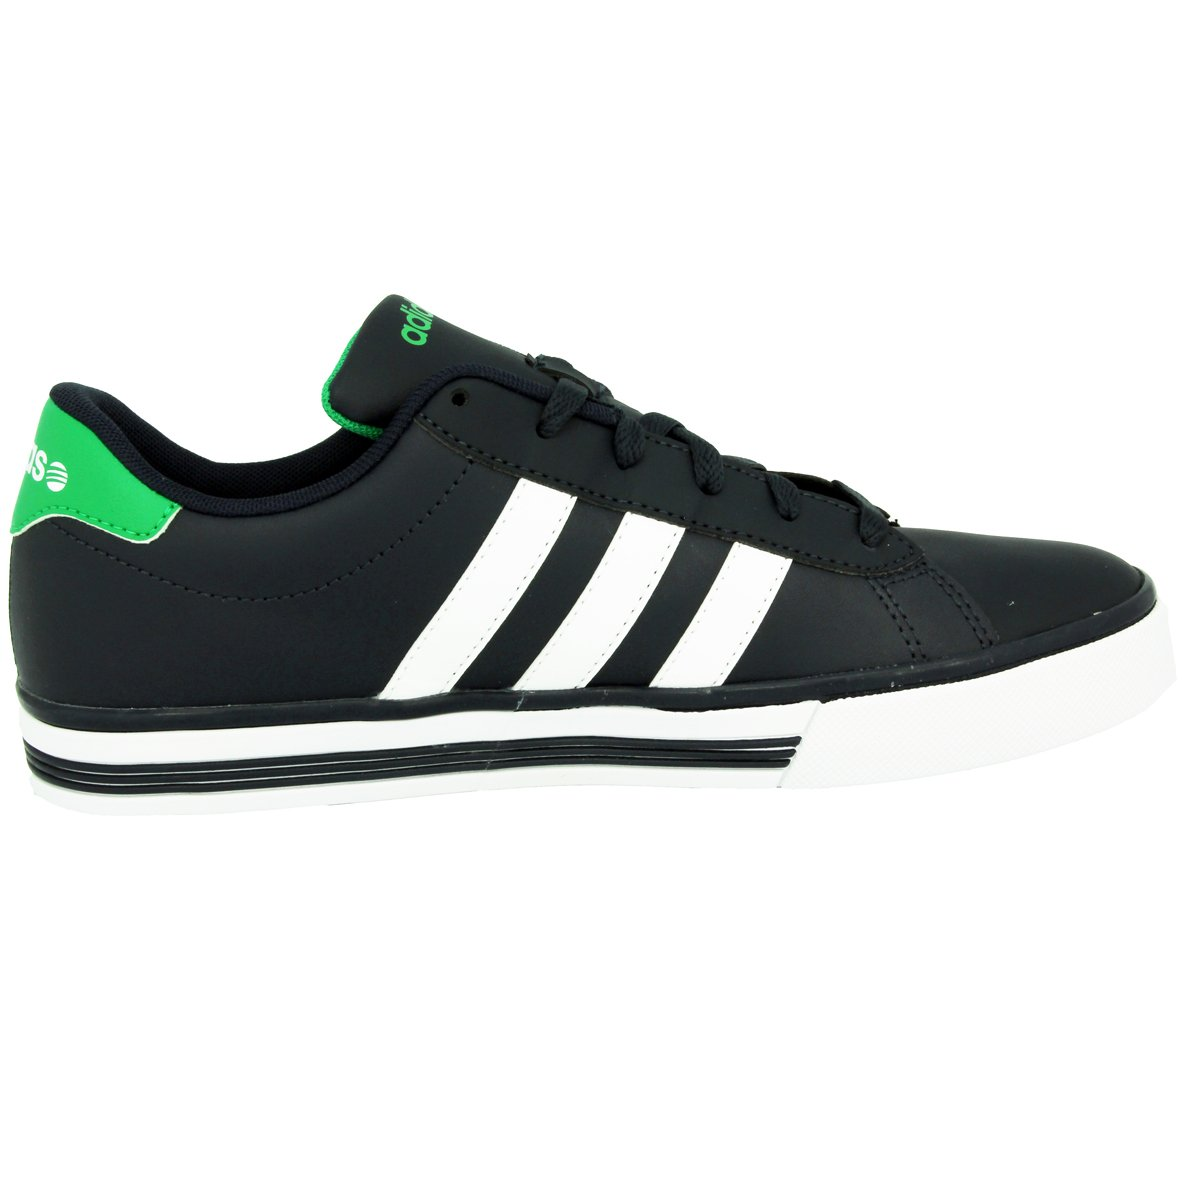 adidas Neo Neo Daily Team B Zapatillas Moda Sneakers Negro